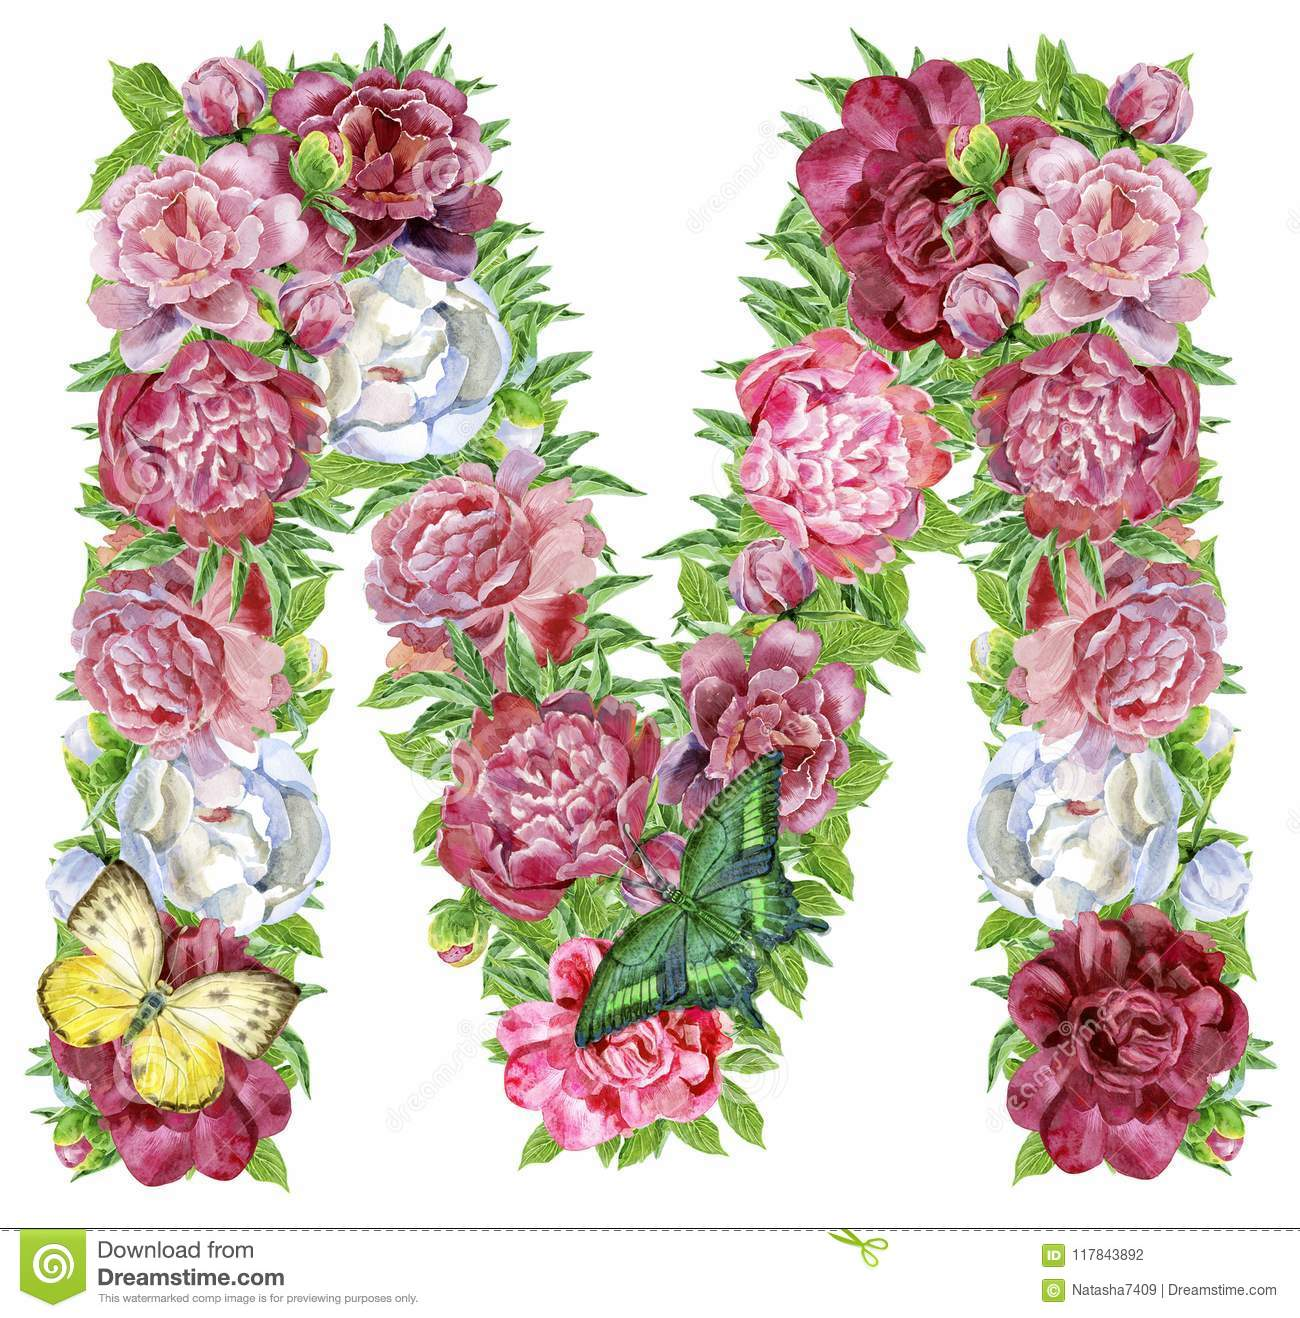 Letter M of watercolor flowers